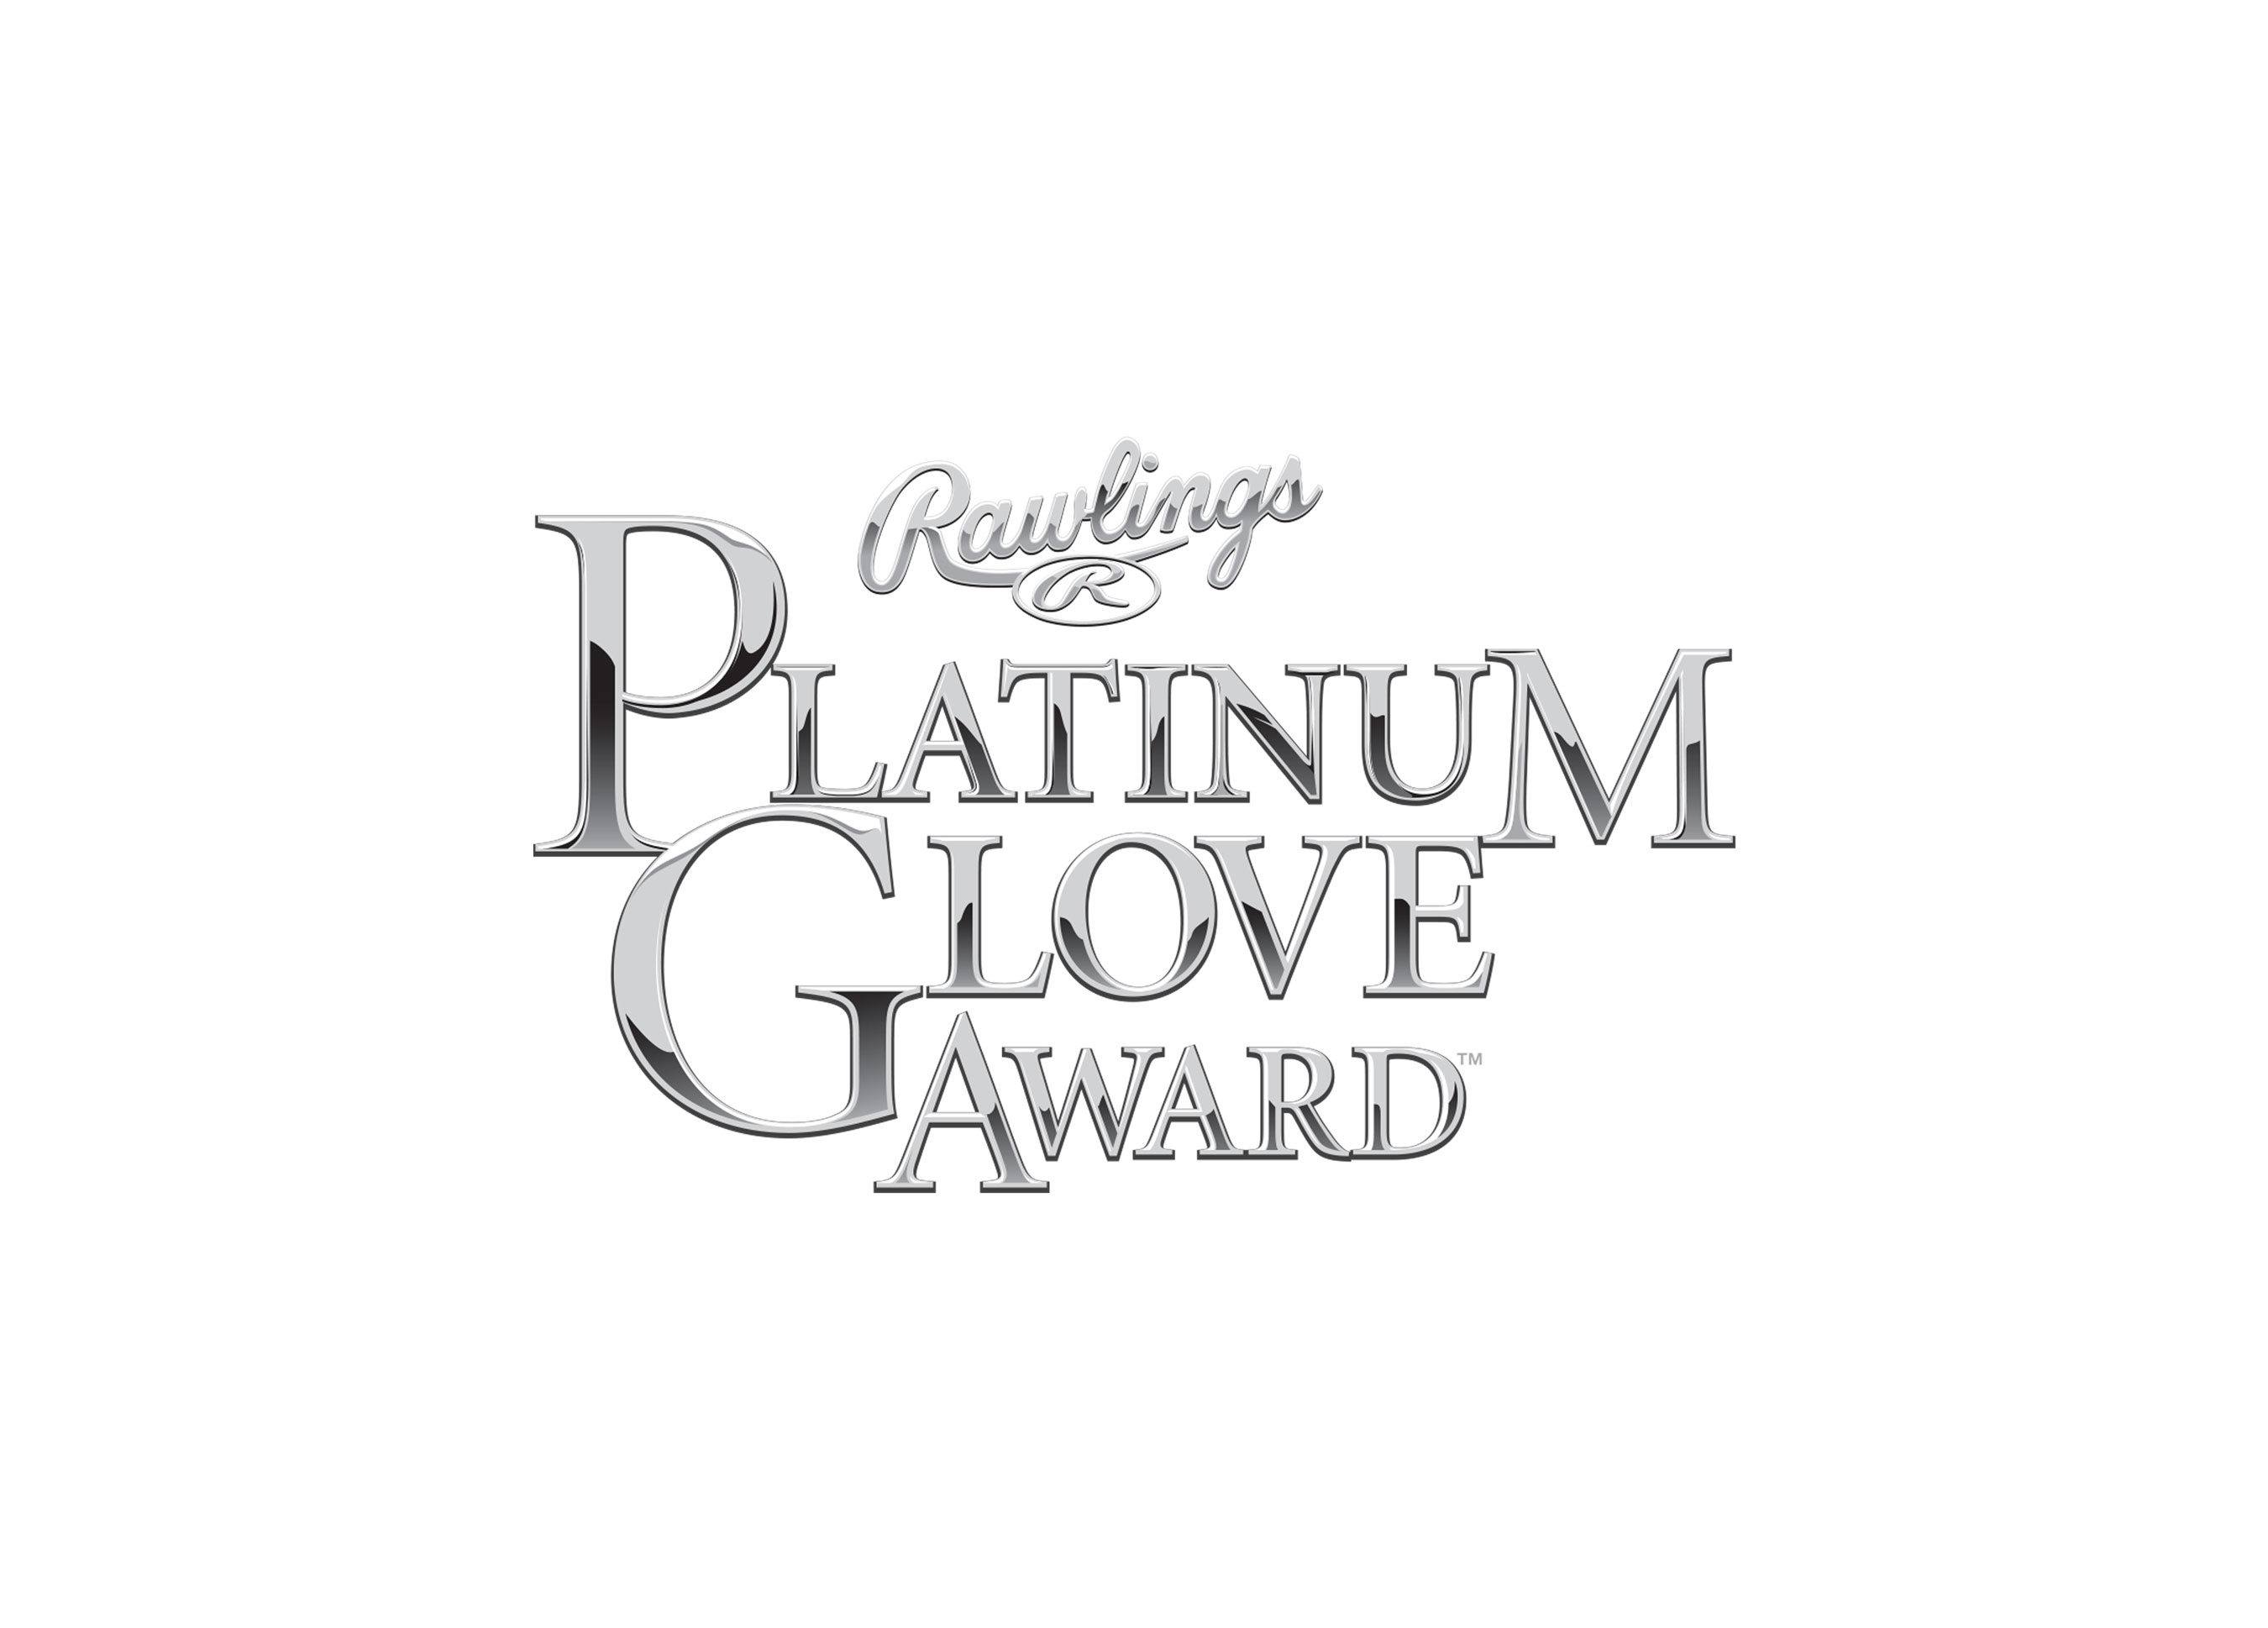 Rawlings Platinum Glove Award logo